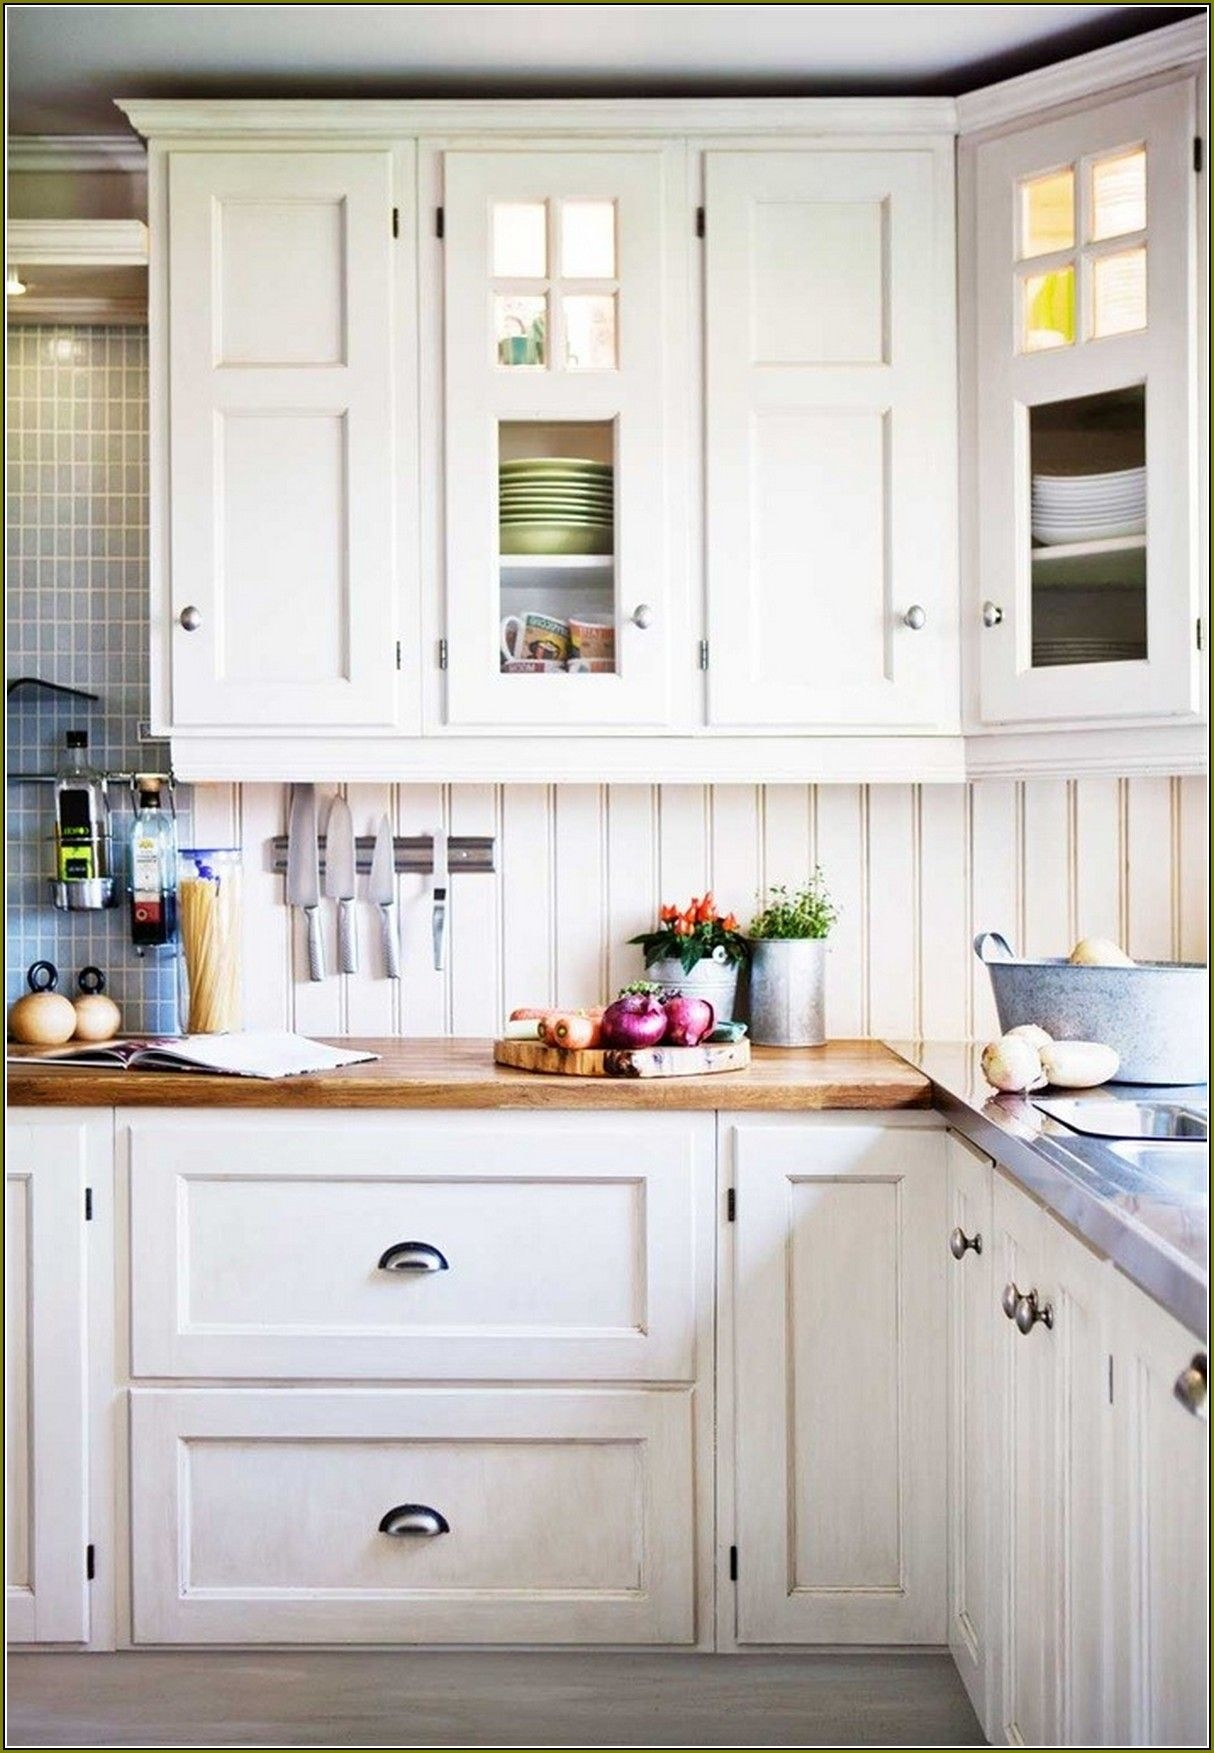 36 Kitchen Cabinet Doors